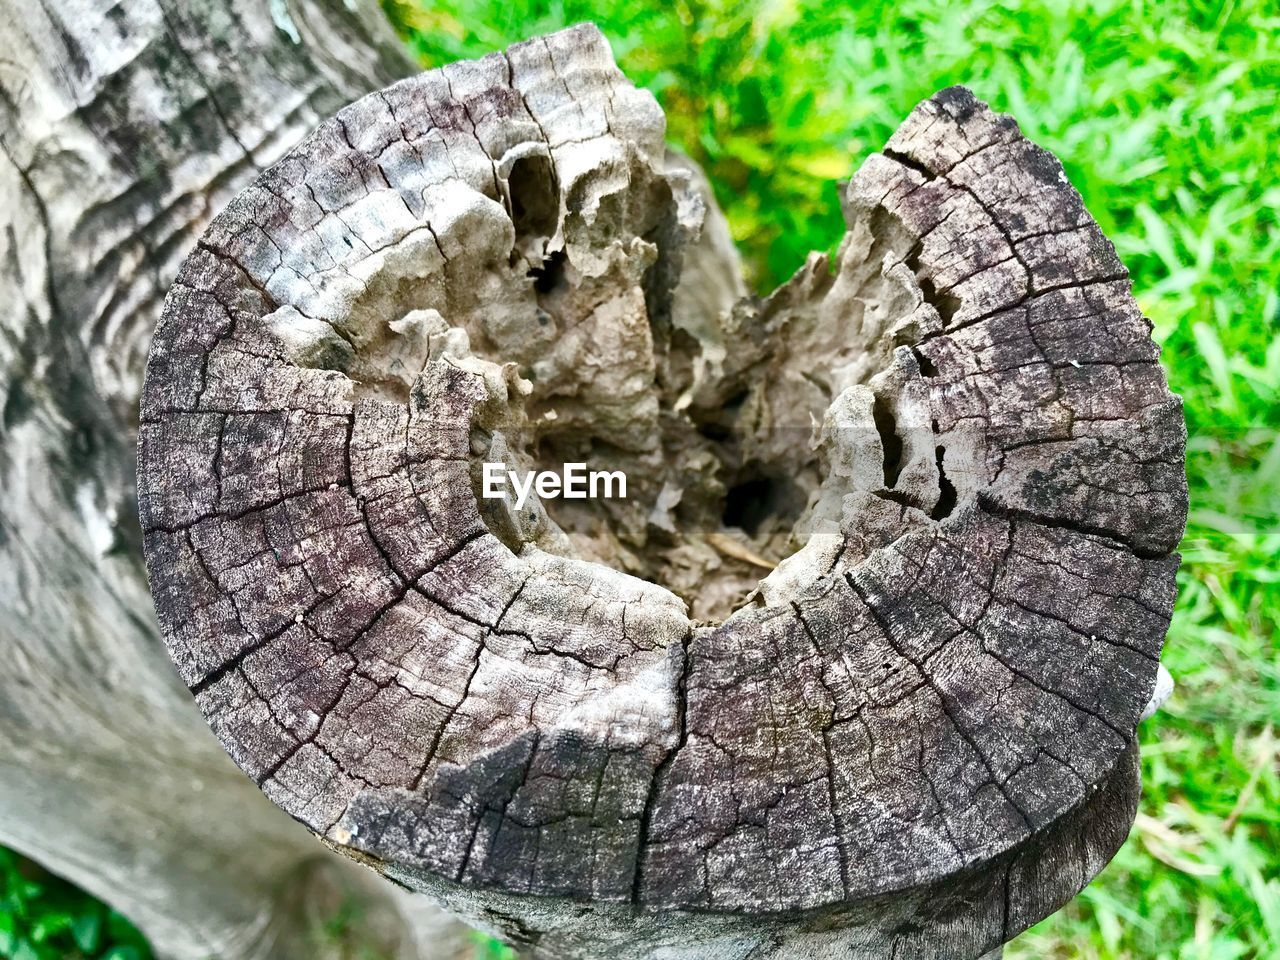 tree, close-up, plant, textured, tree trunk, wood - material, bark, nature, trunk, no people, day, pattern, rough, tree stump, selective focus, wood, outdoors, focus on foreground, natural pattern, growth, tree ring